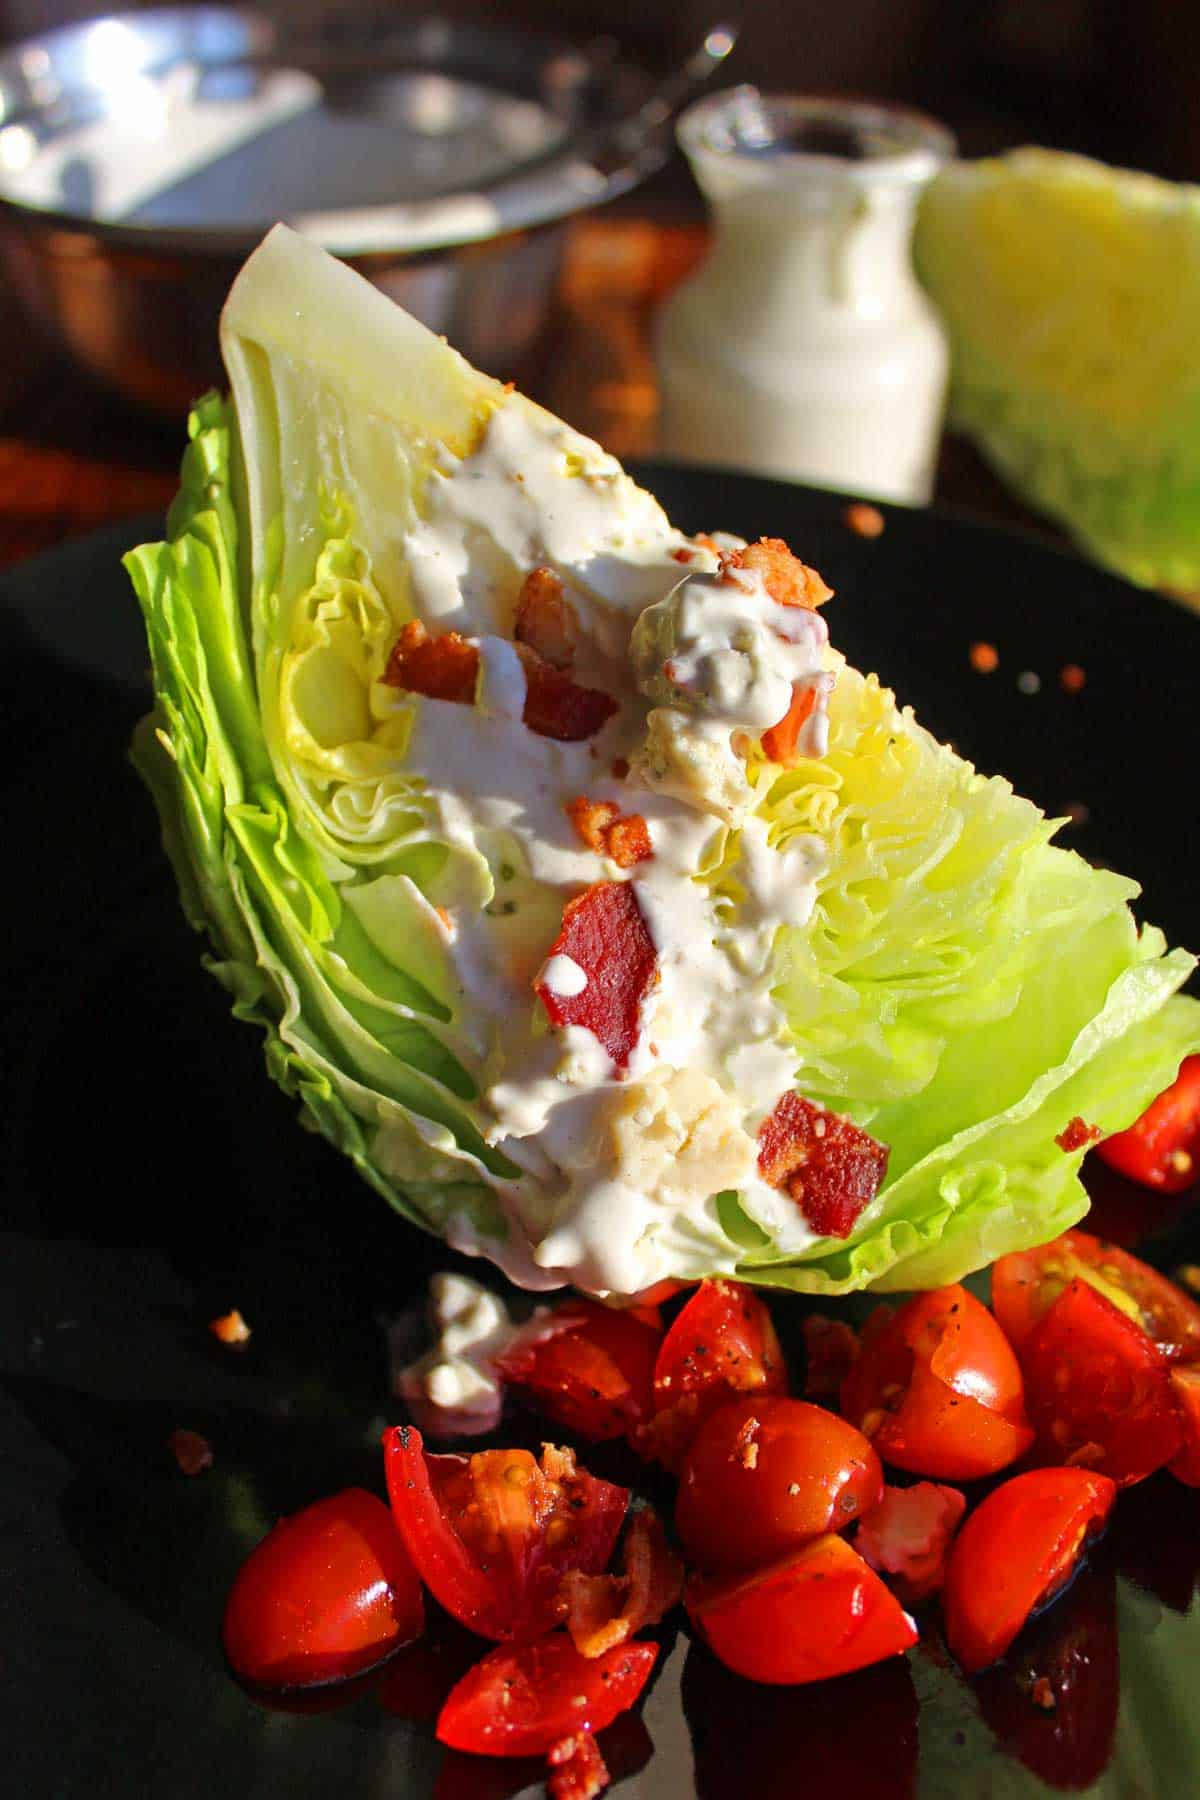 classic wedge salad ready to serve